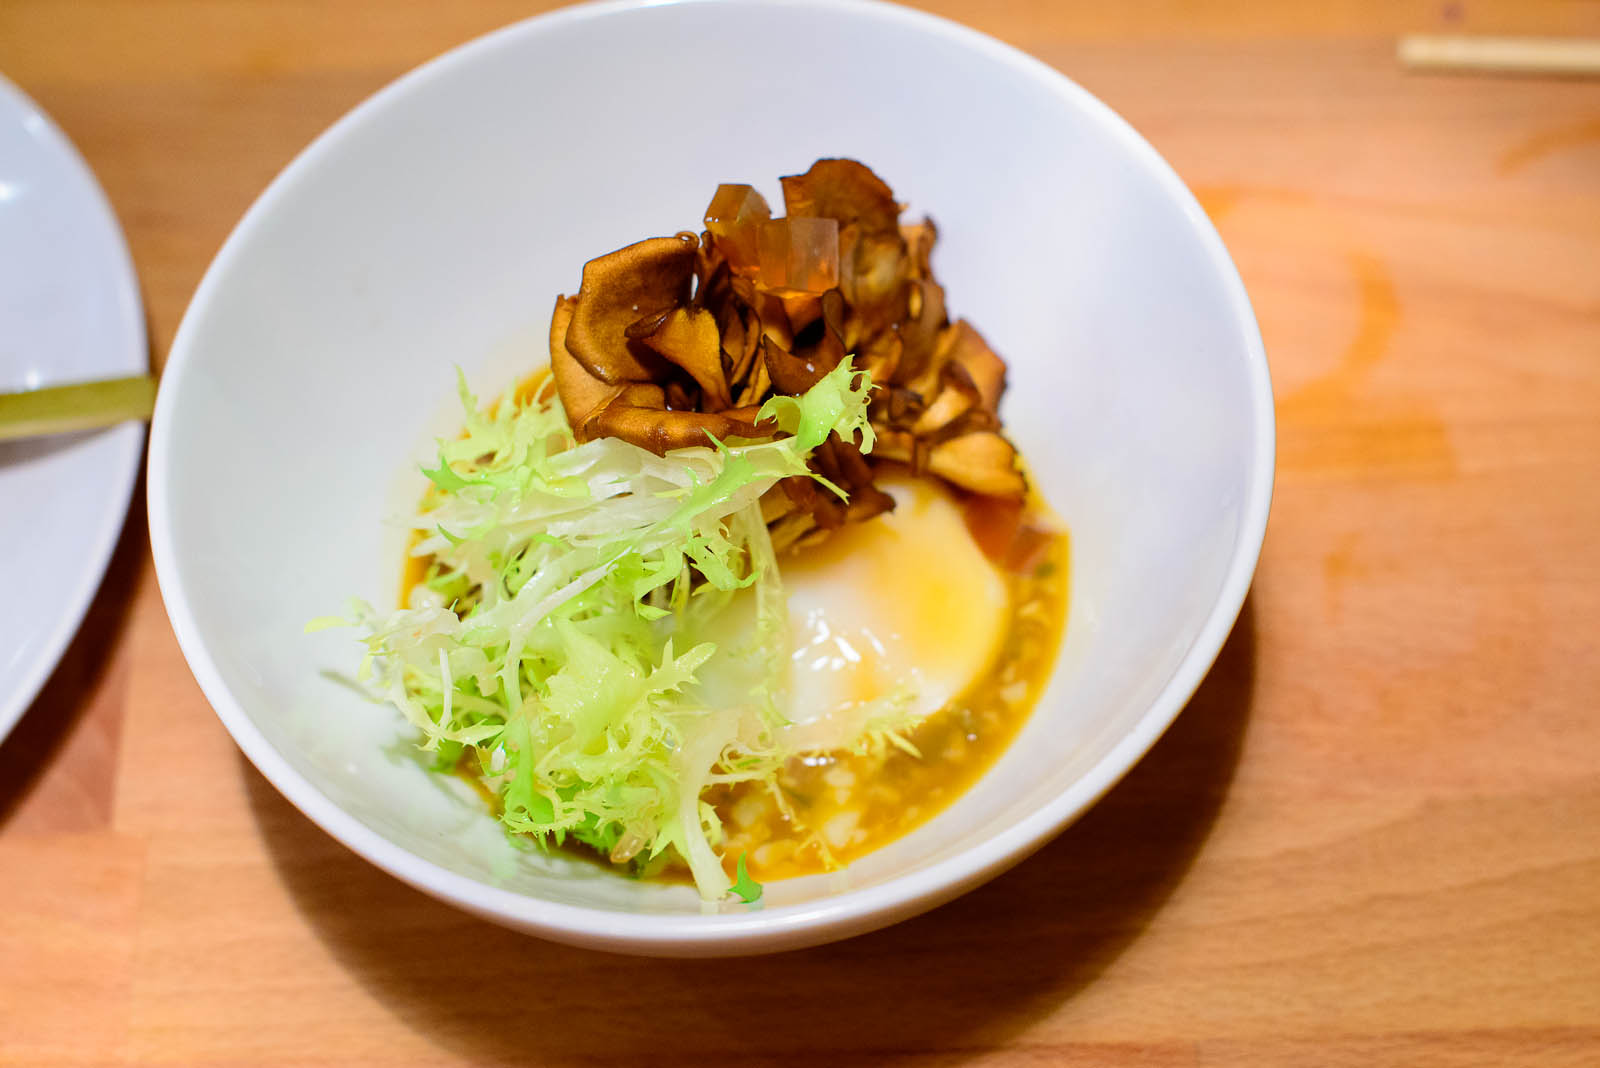 6th Course: Maitake mushroom, egg vinaigrette, dashi gelee ($10)